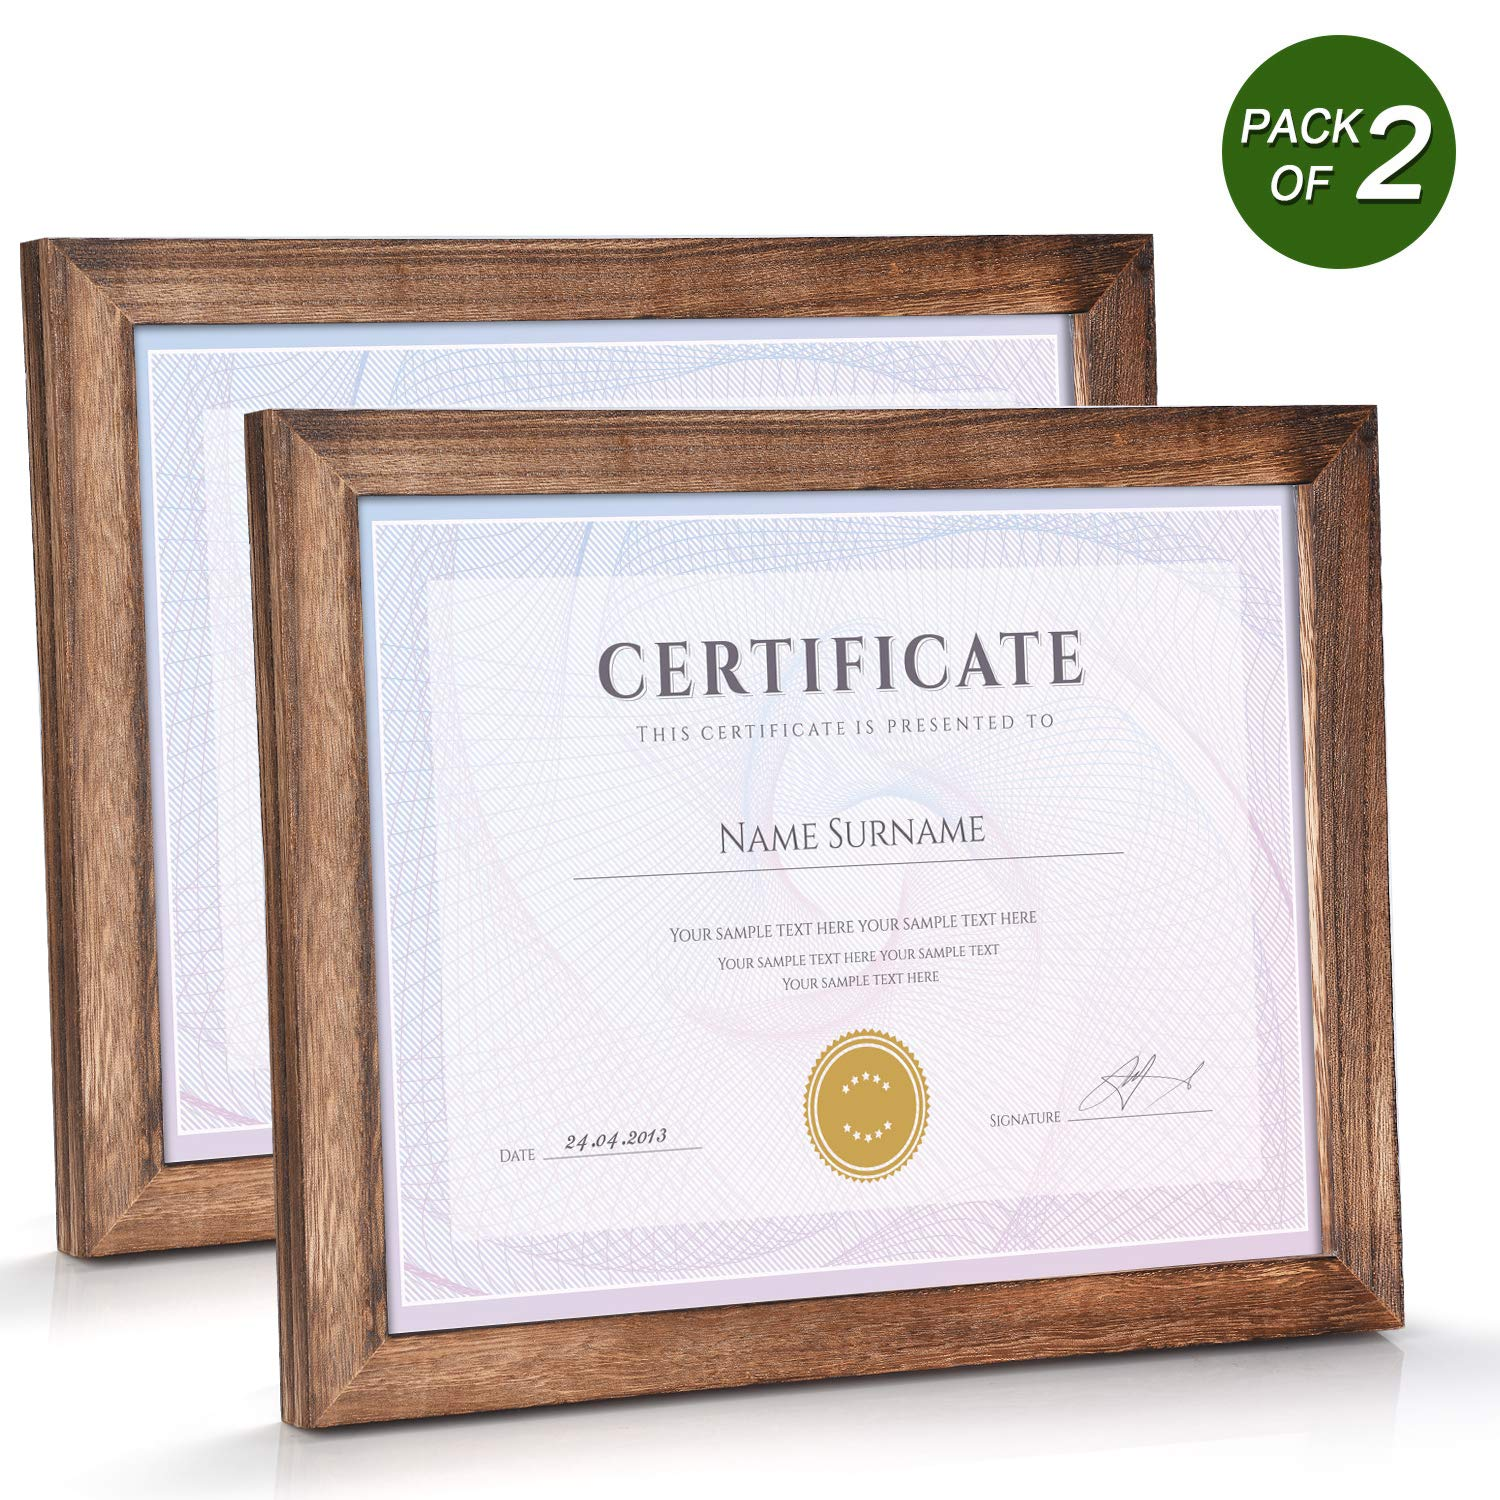 Emfogo 8.5x11 Certificate Frames with Stand Rustic Wood Document Frames with High Definition Glass for Wall or Tabletop Display Set of 2 Carbonized Black by Emfogo